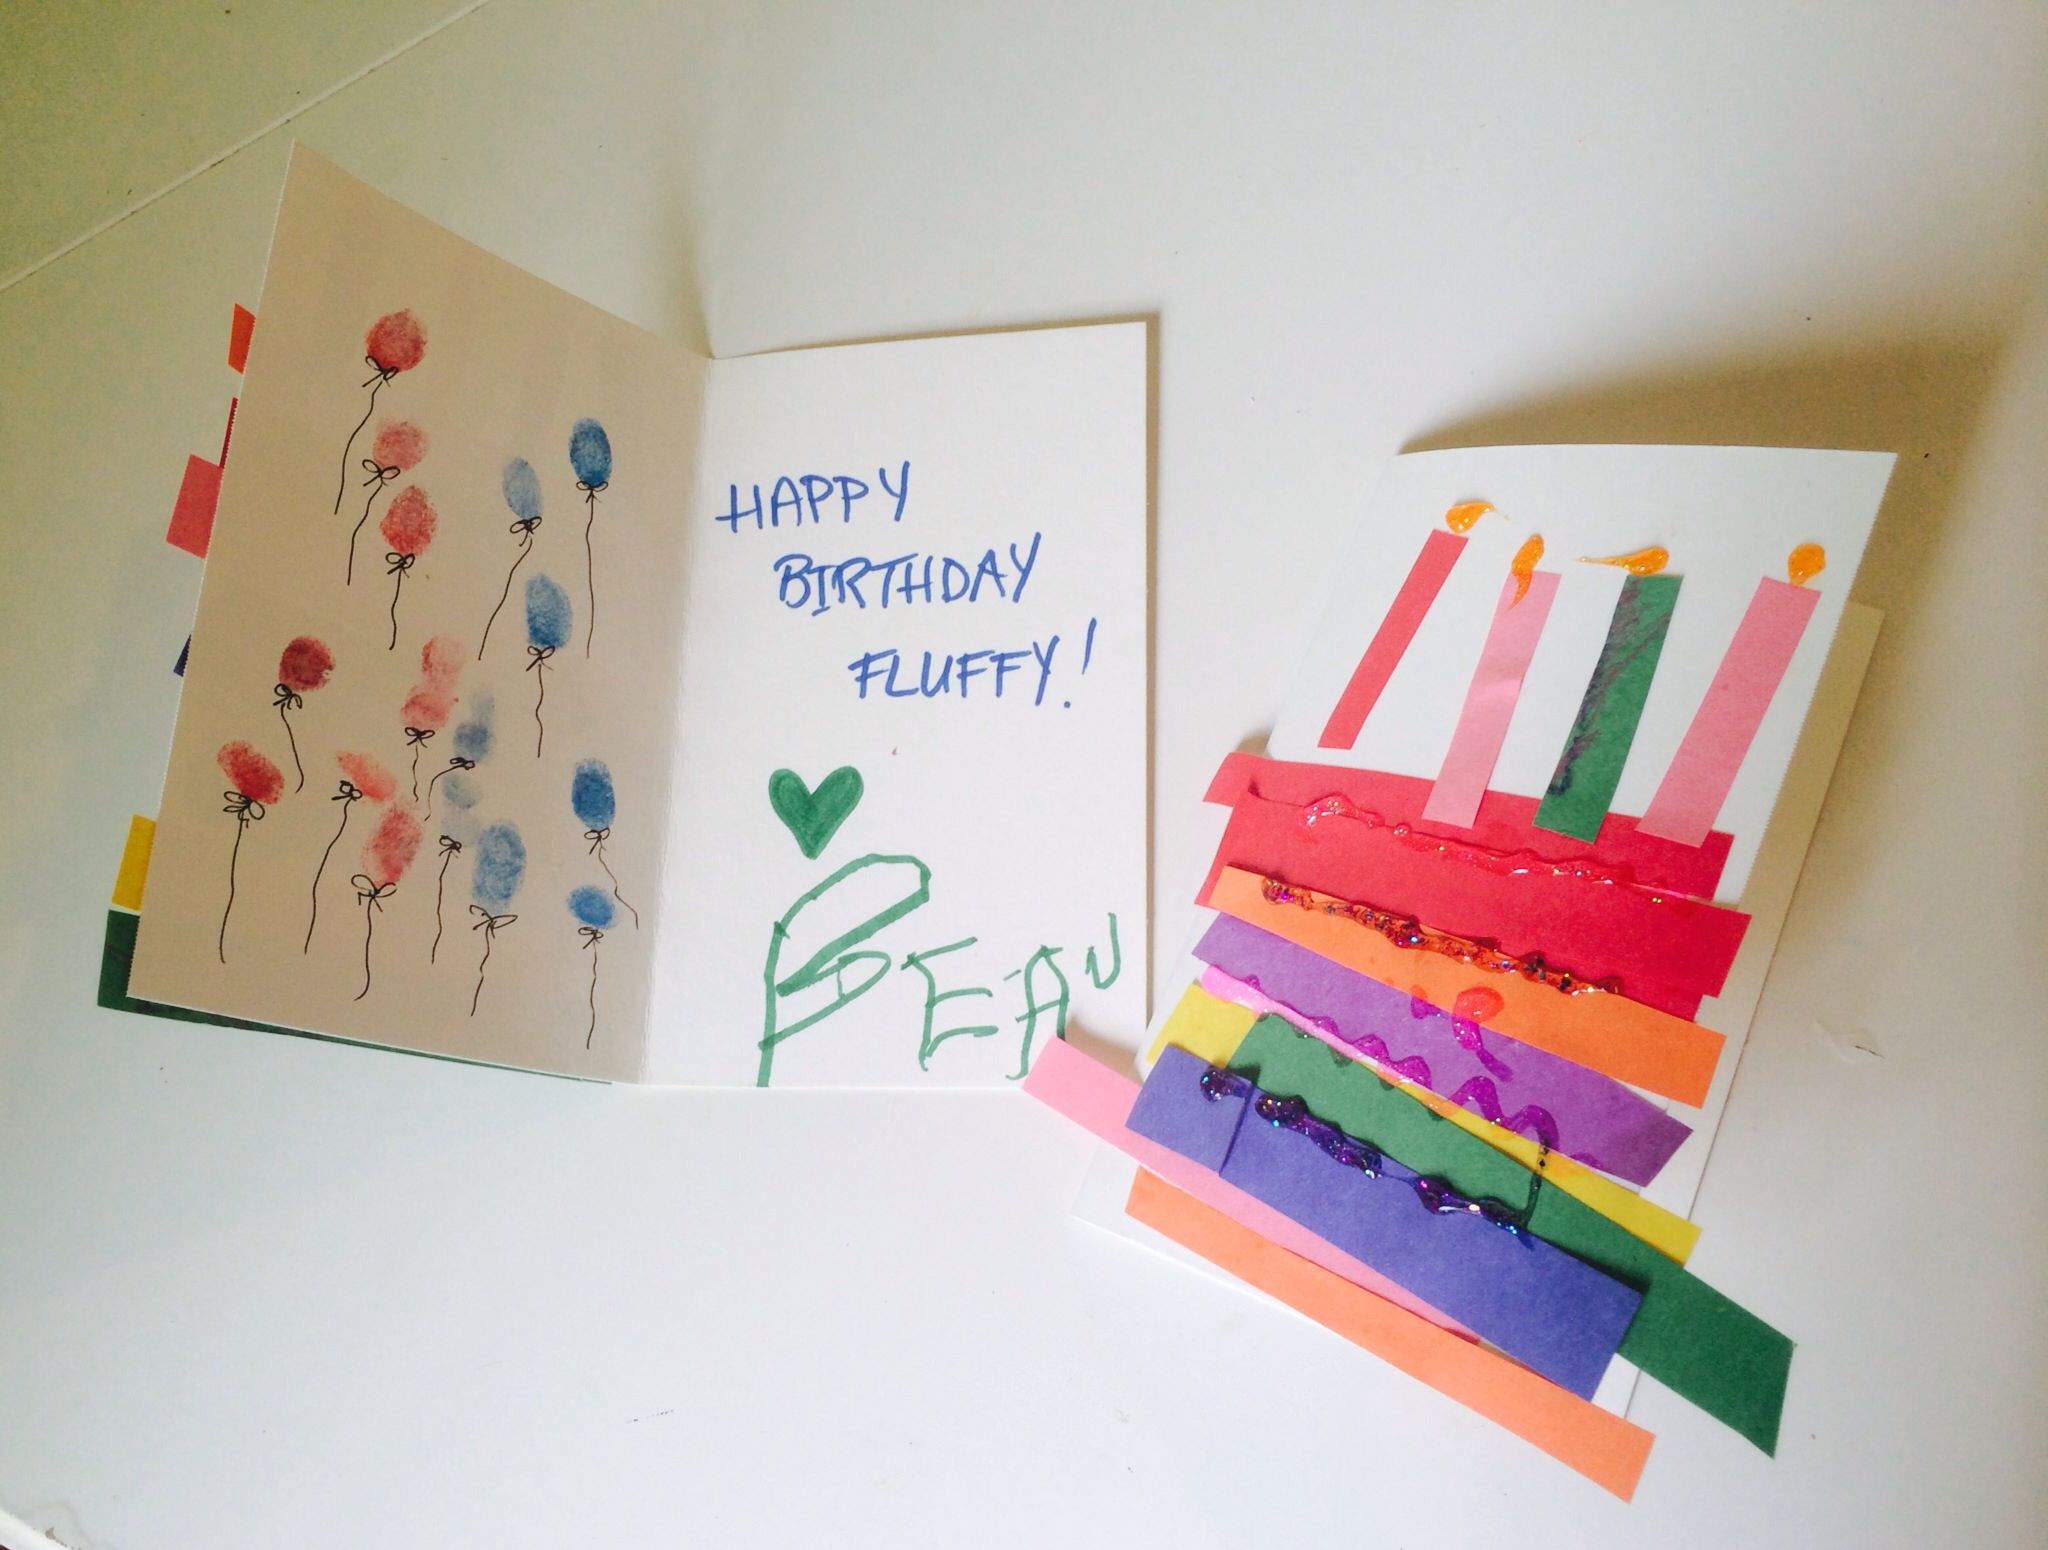 Birthday Cards Made By Toddlers Rainbow Cake W Construction Paper Glue A Bit Of Glitter Fingerprint Stamp Balloons Ideas Inspired From Pins